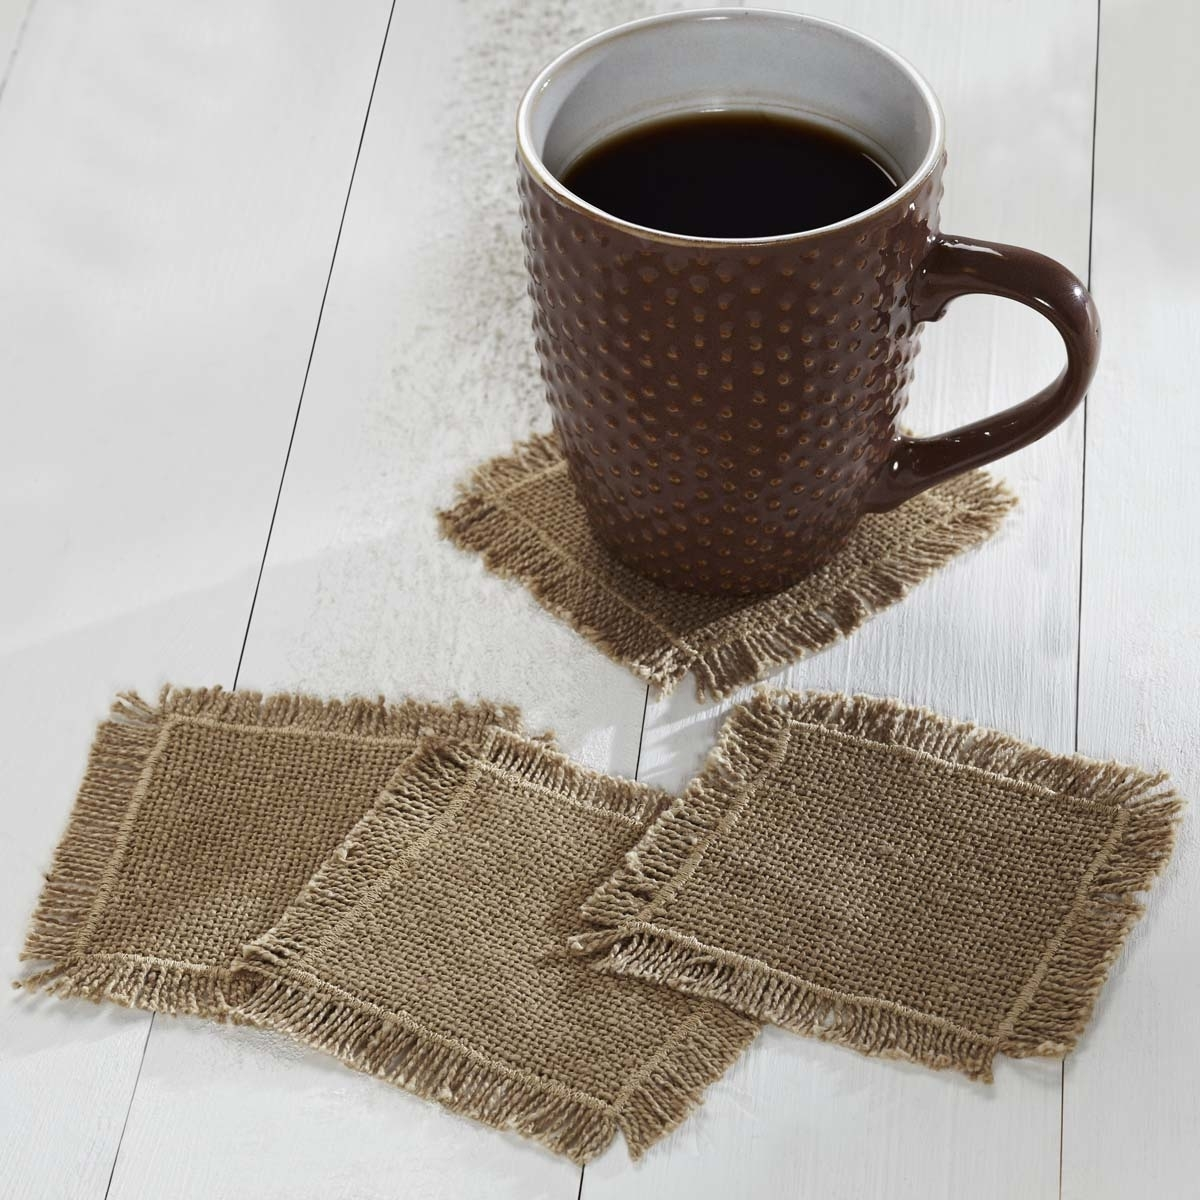 Farmhouse Tabletop & Kitchen Burlap Natural Fringed Tan Coaster Set of 4